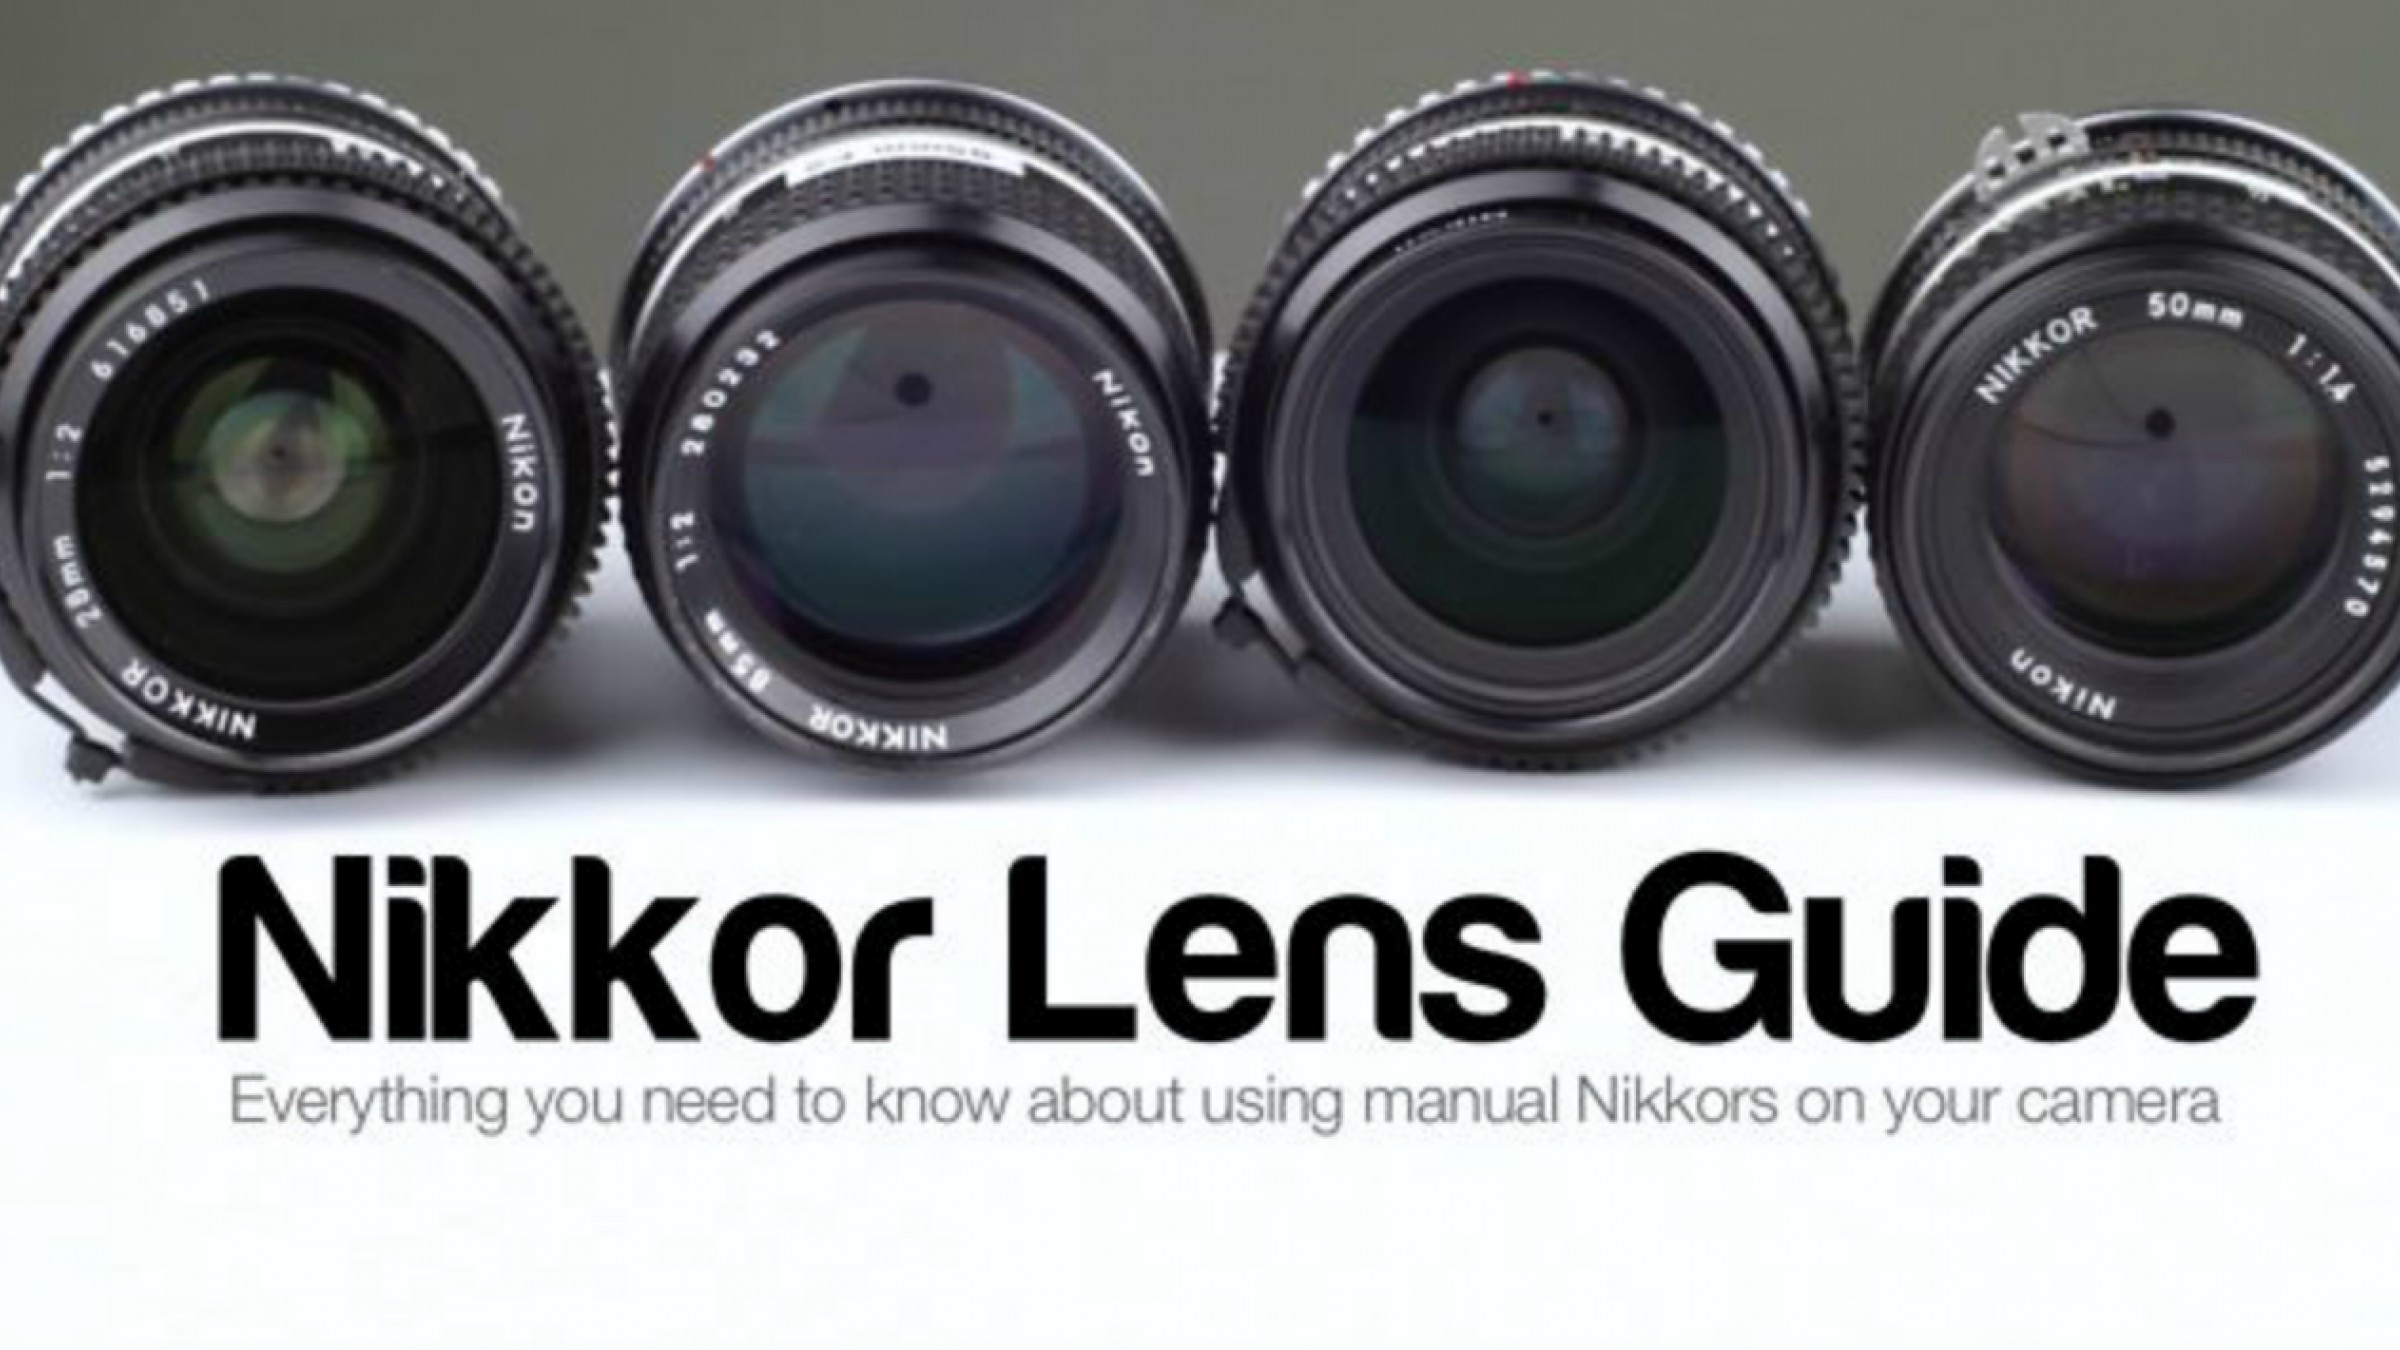 Manual Focus Nikon Primes: The Swiss Army Knife of Lenses